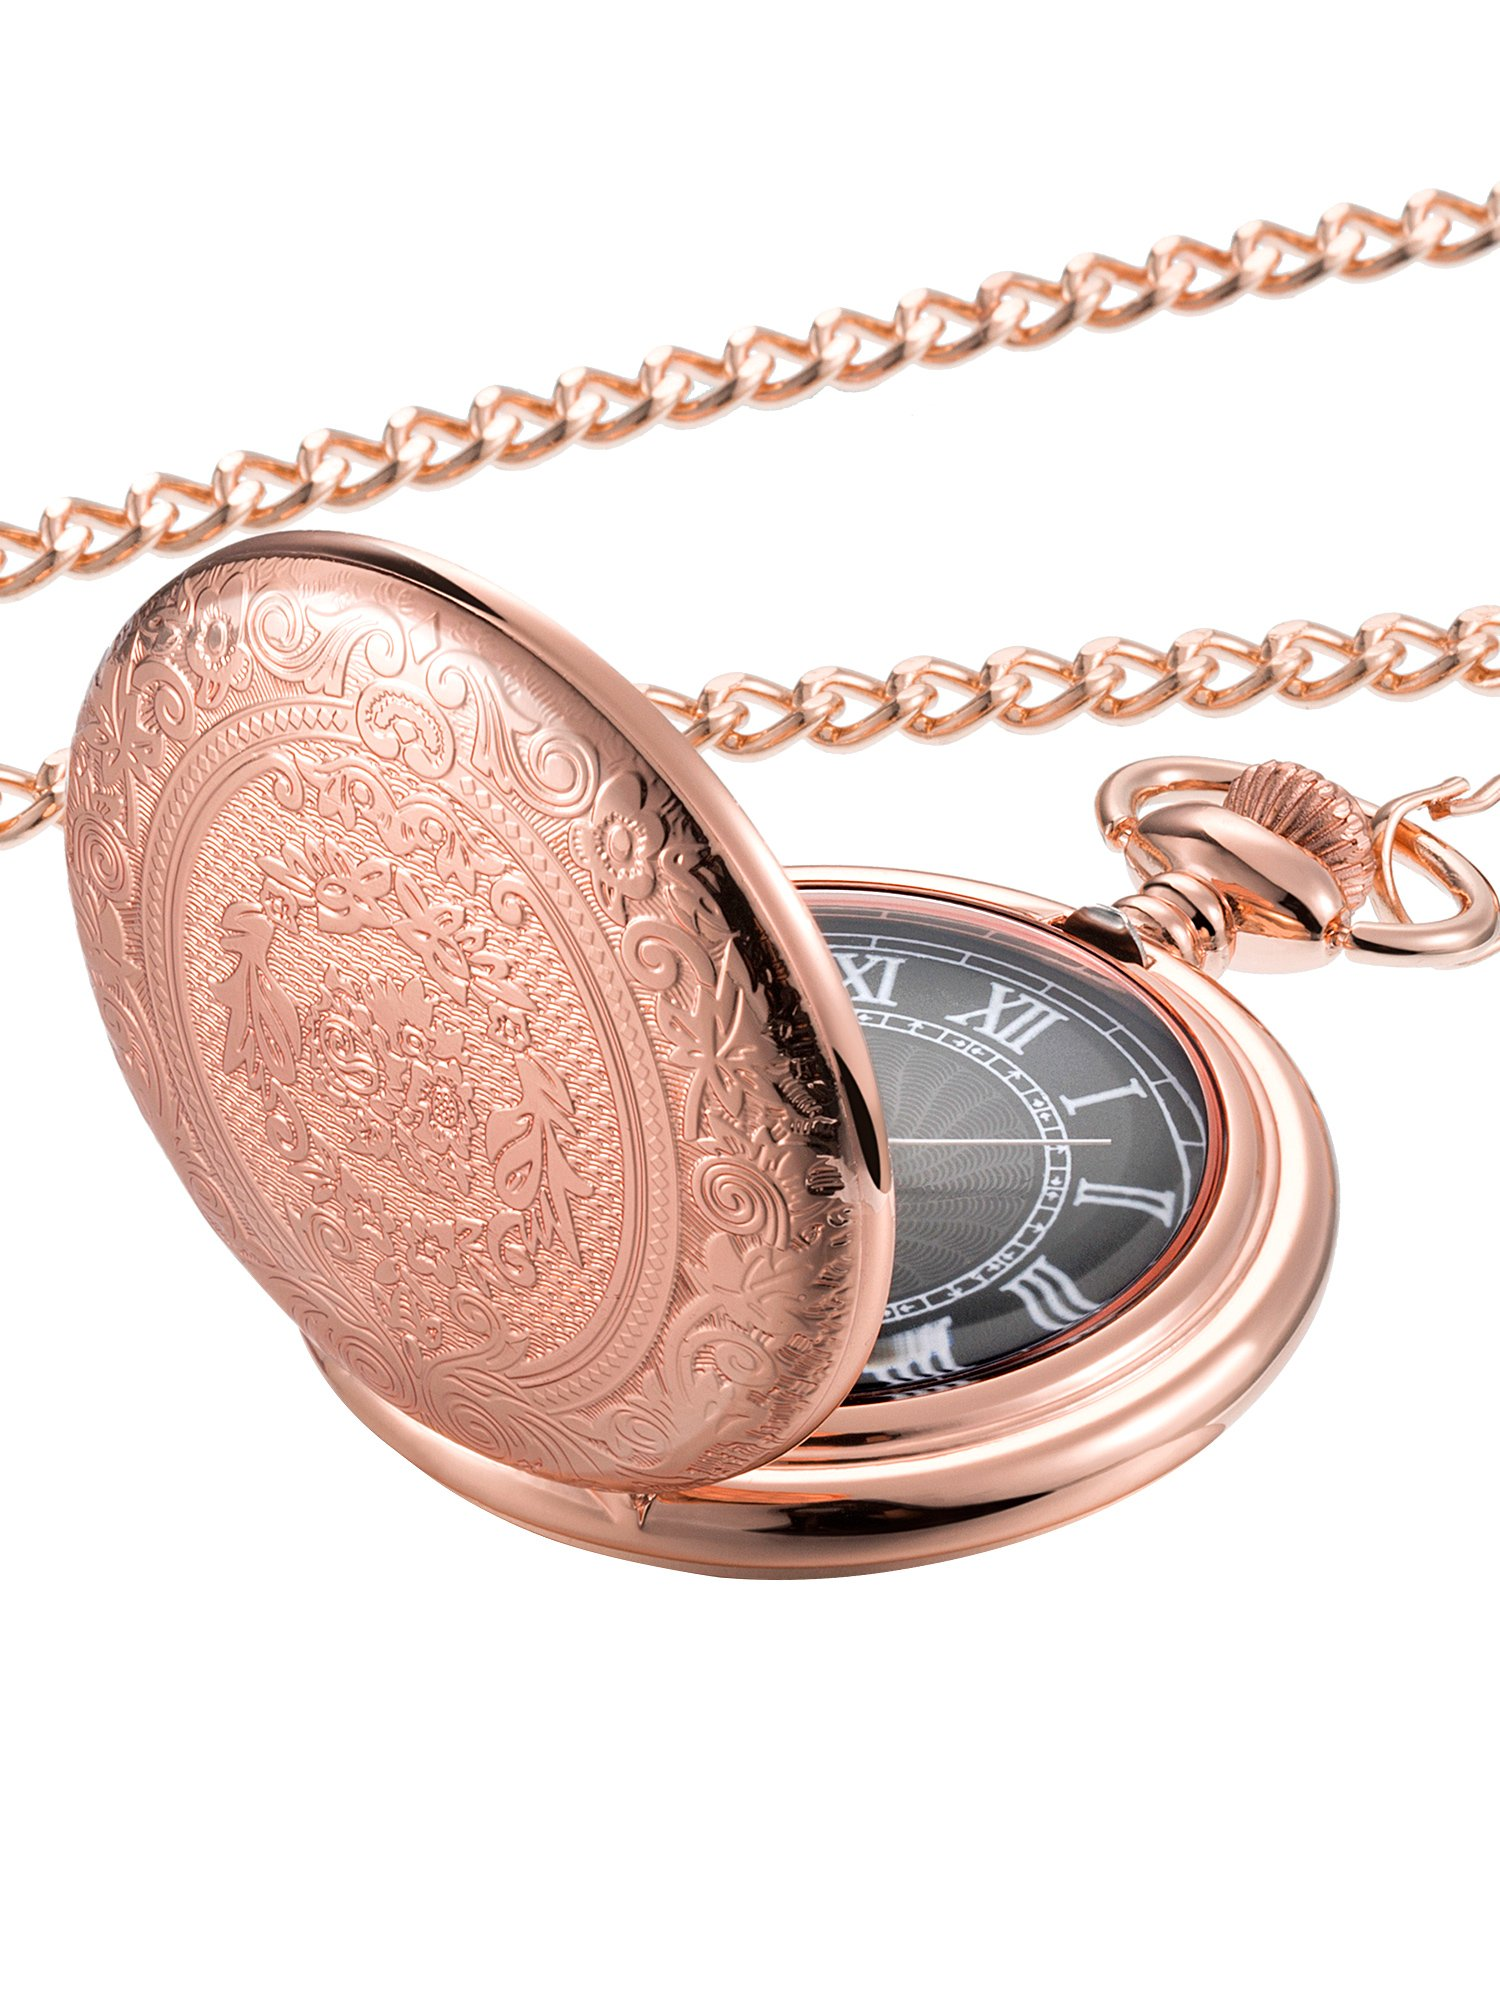 Hicarer Quartz Pocket Watch for Men with Black Dial and Chain (Rose Gold)